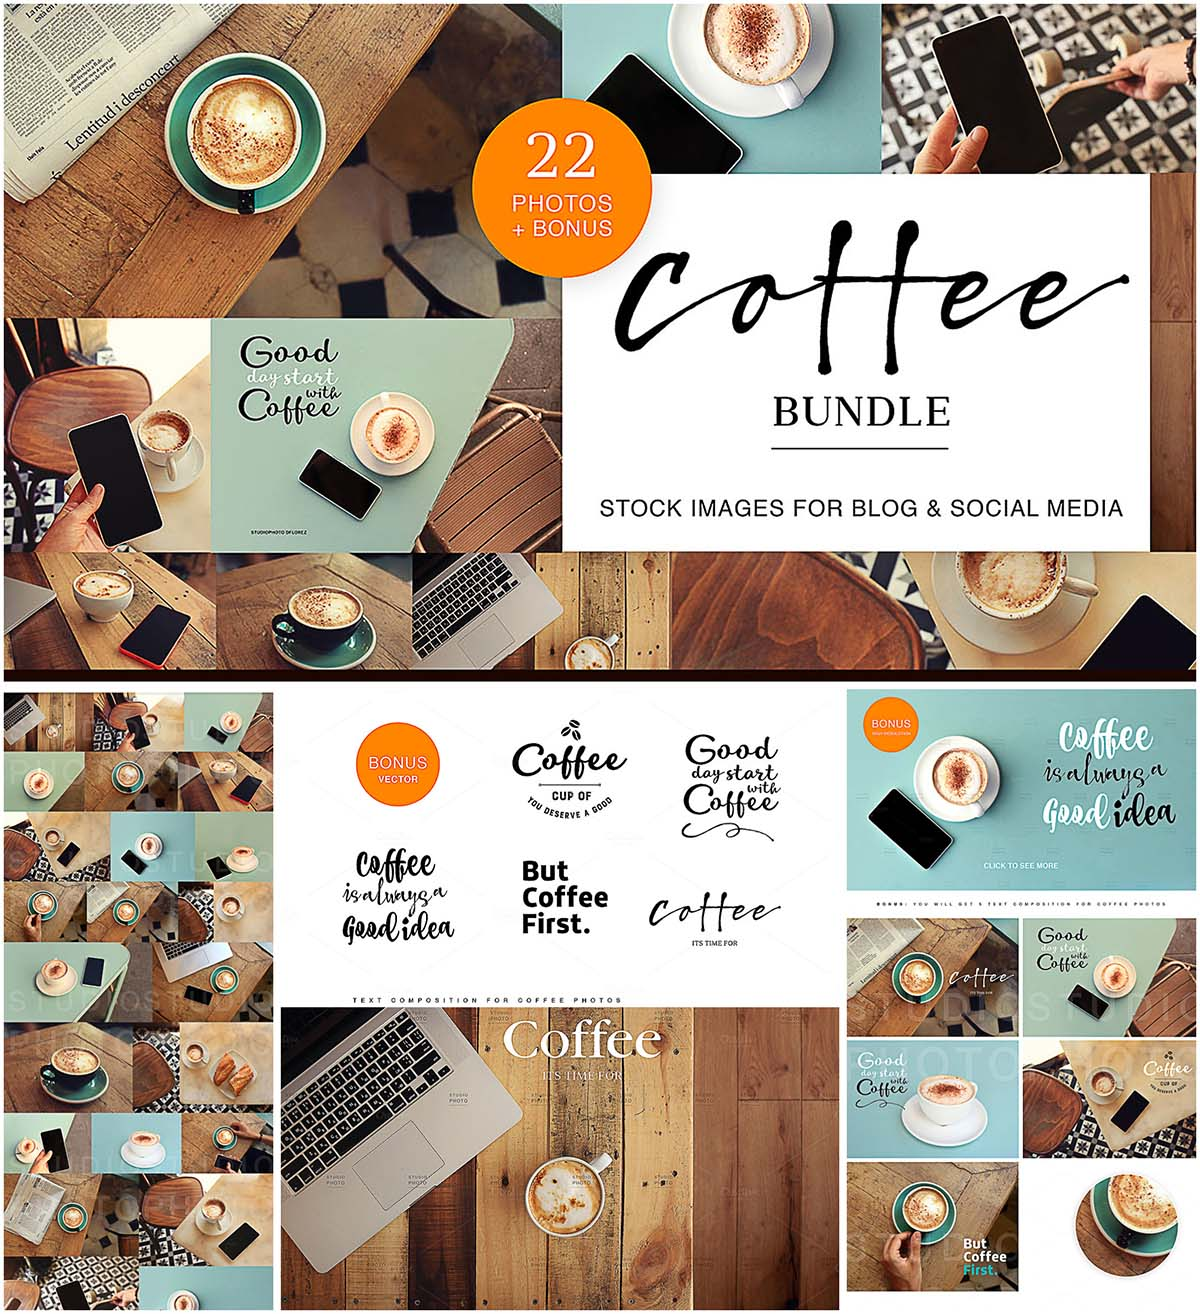 Coffee stock image collection